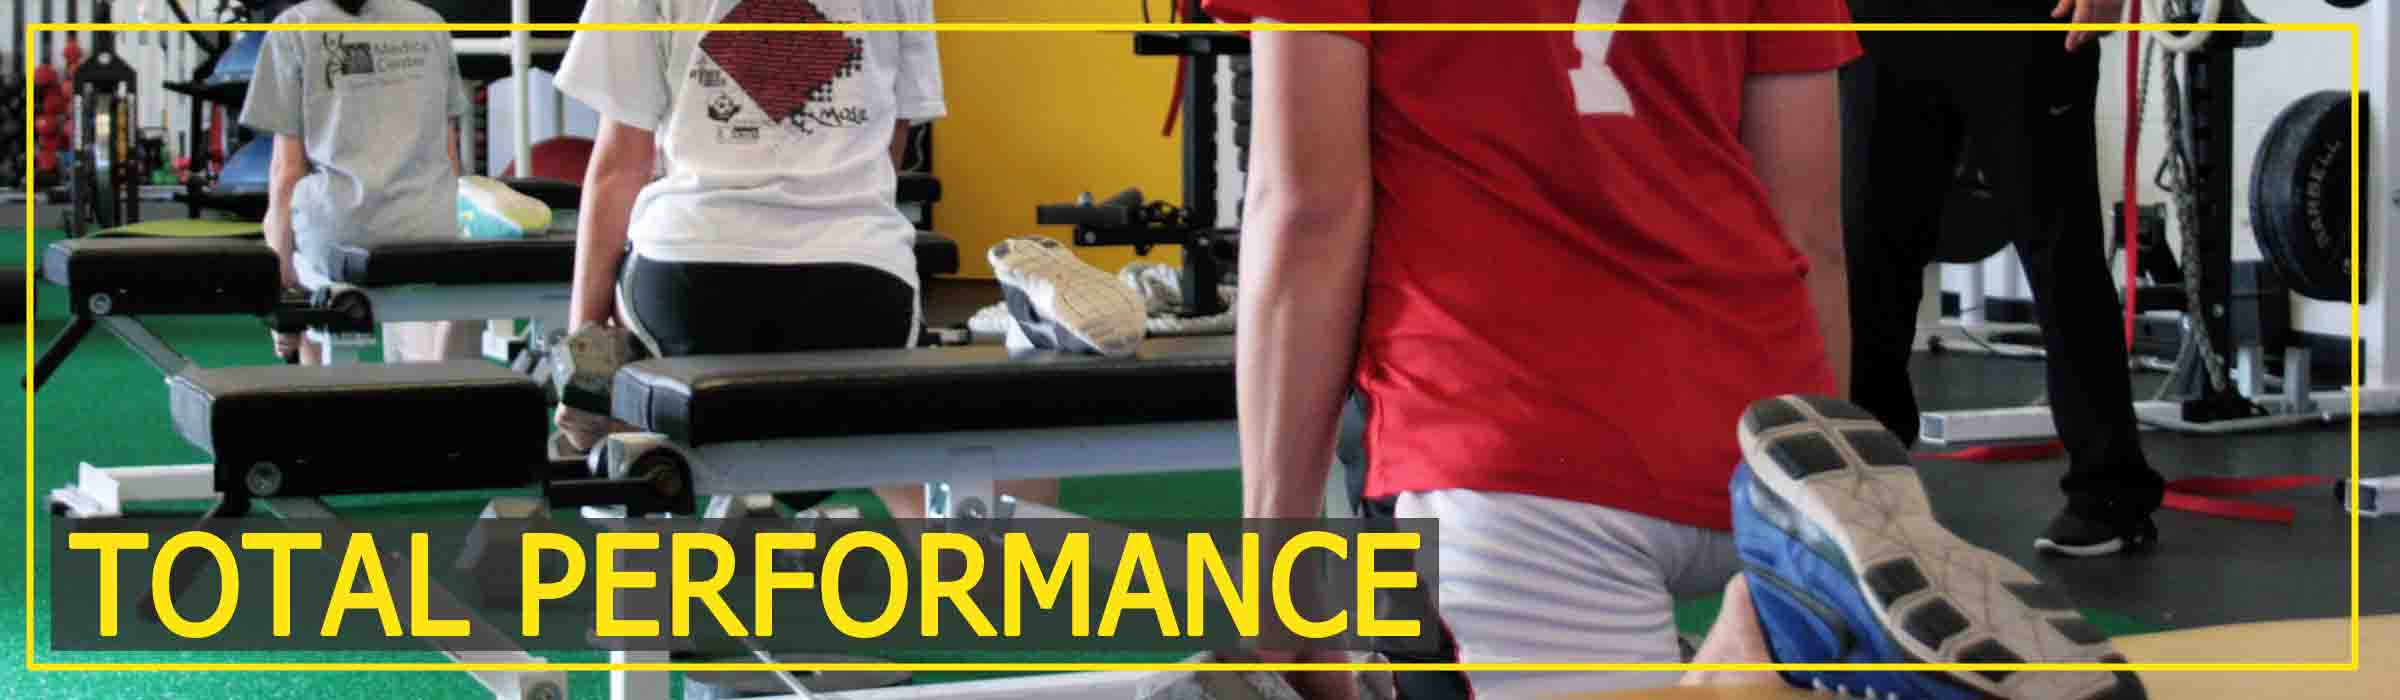 Go Sports Performance powered by Parisi Speed School Total Performance Program